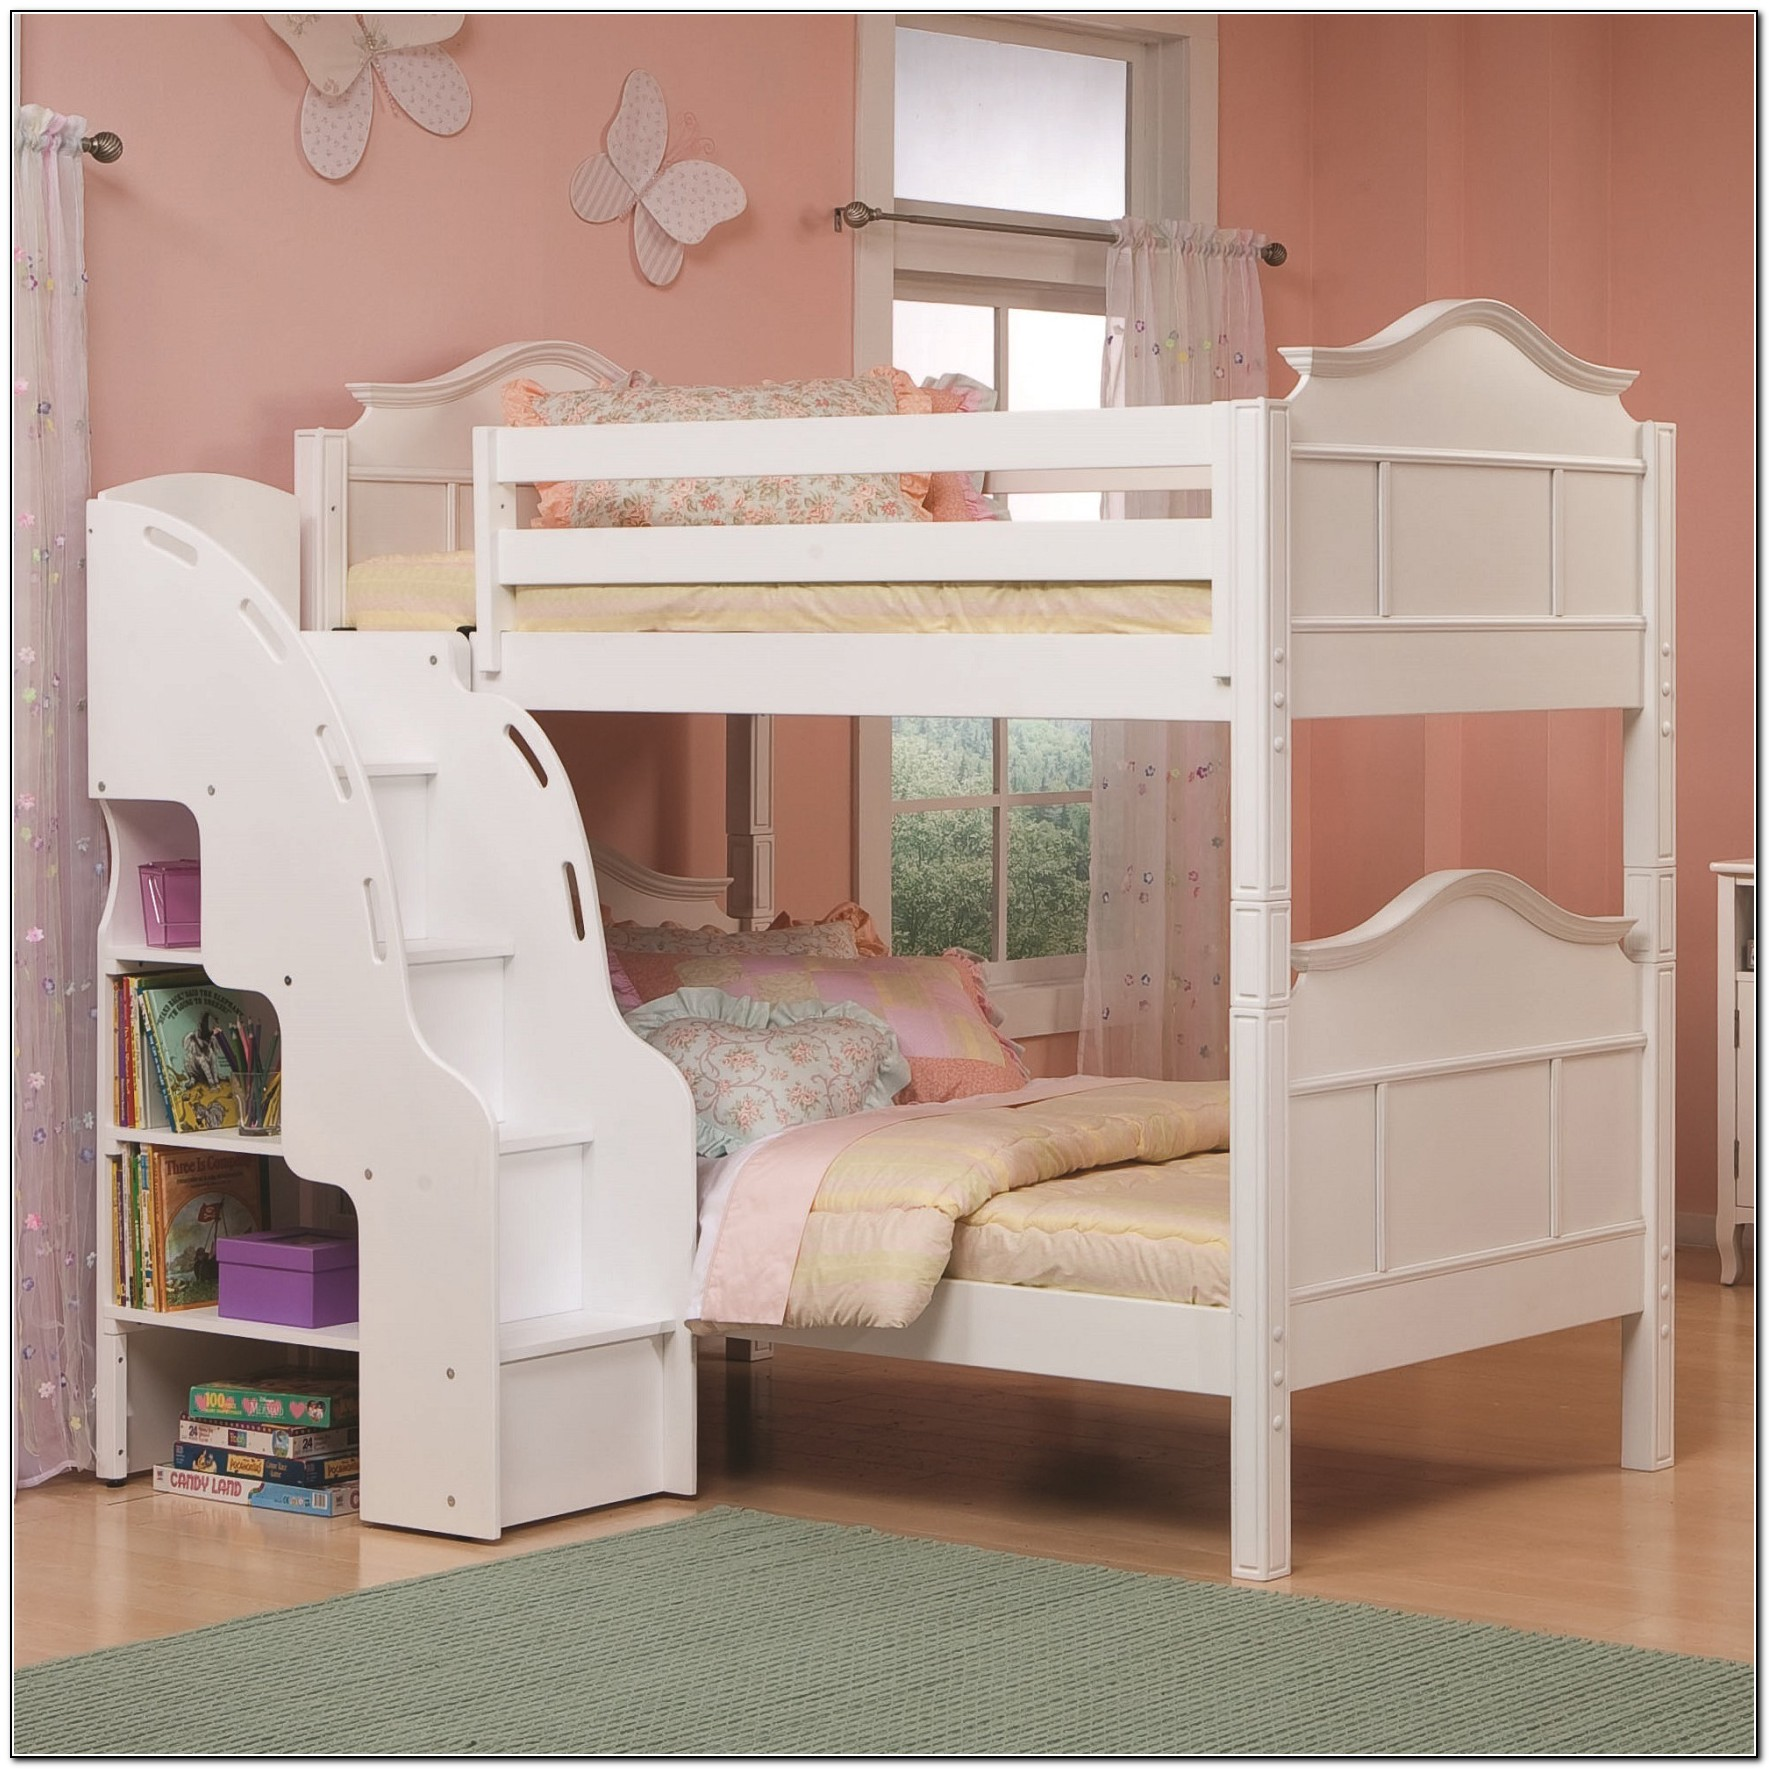 Beds For Girls With Storage